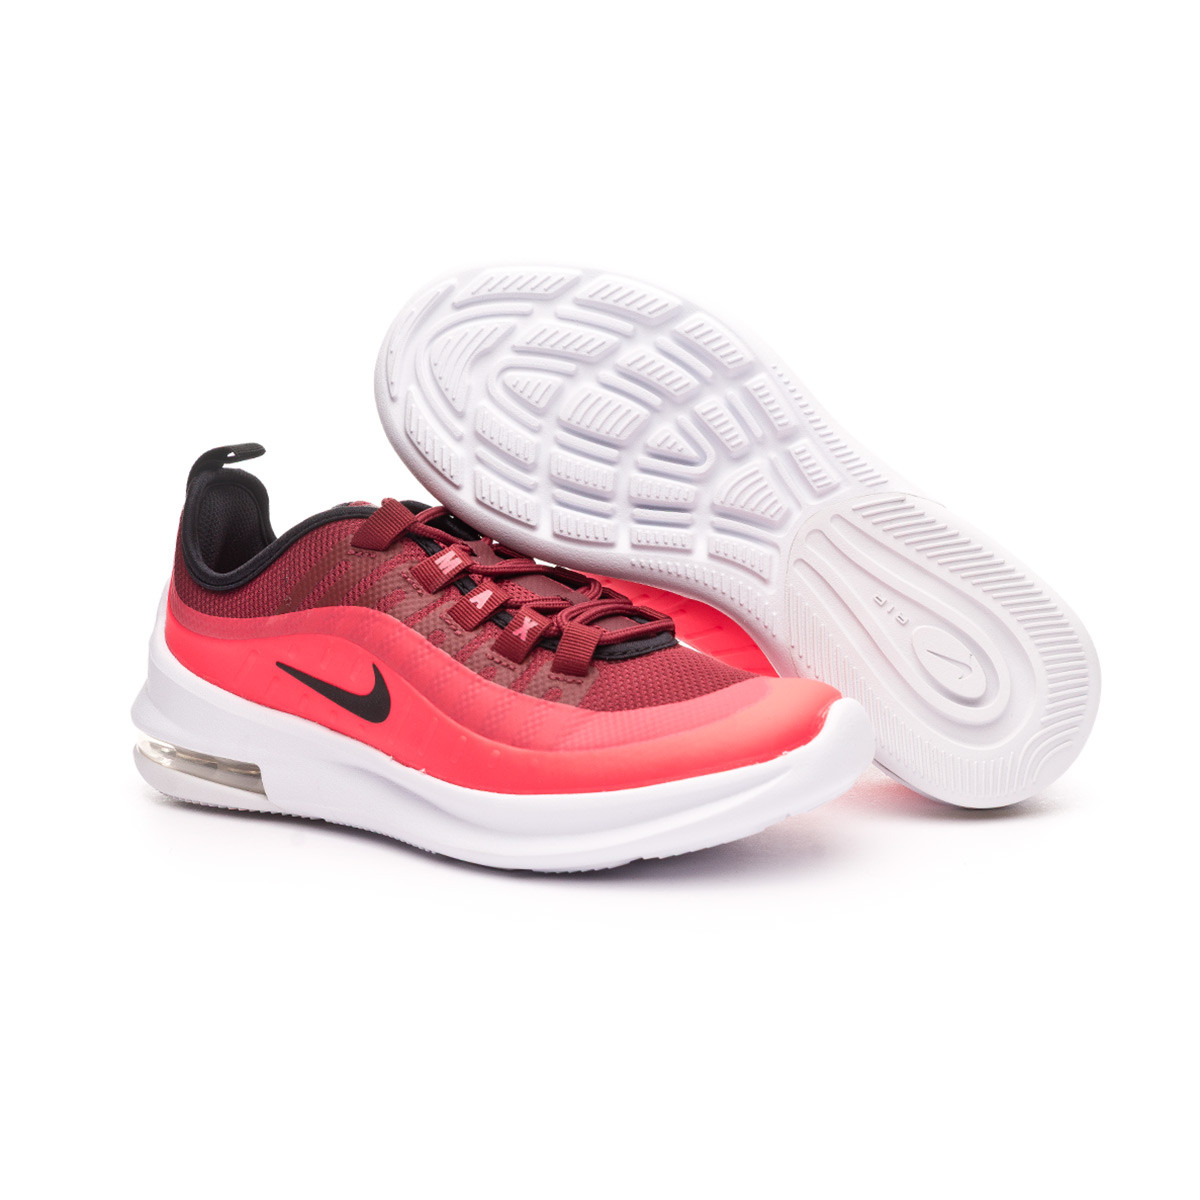 bota Plano Pedir prestado  Trainers Nike Air Max Axis Niño Team red-Black-Red orbit-White - Football  store Fútbol Emotion